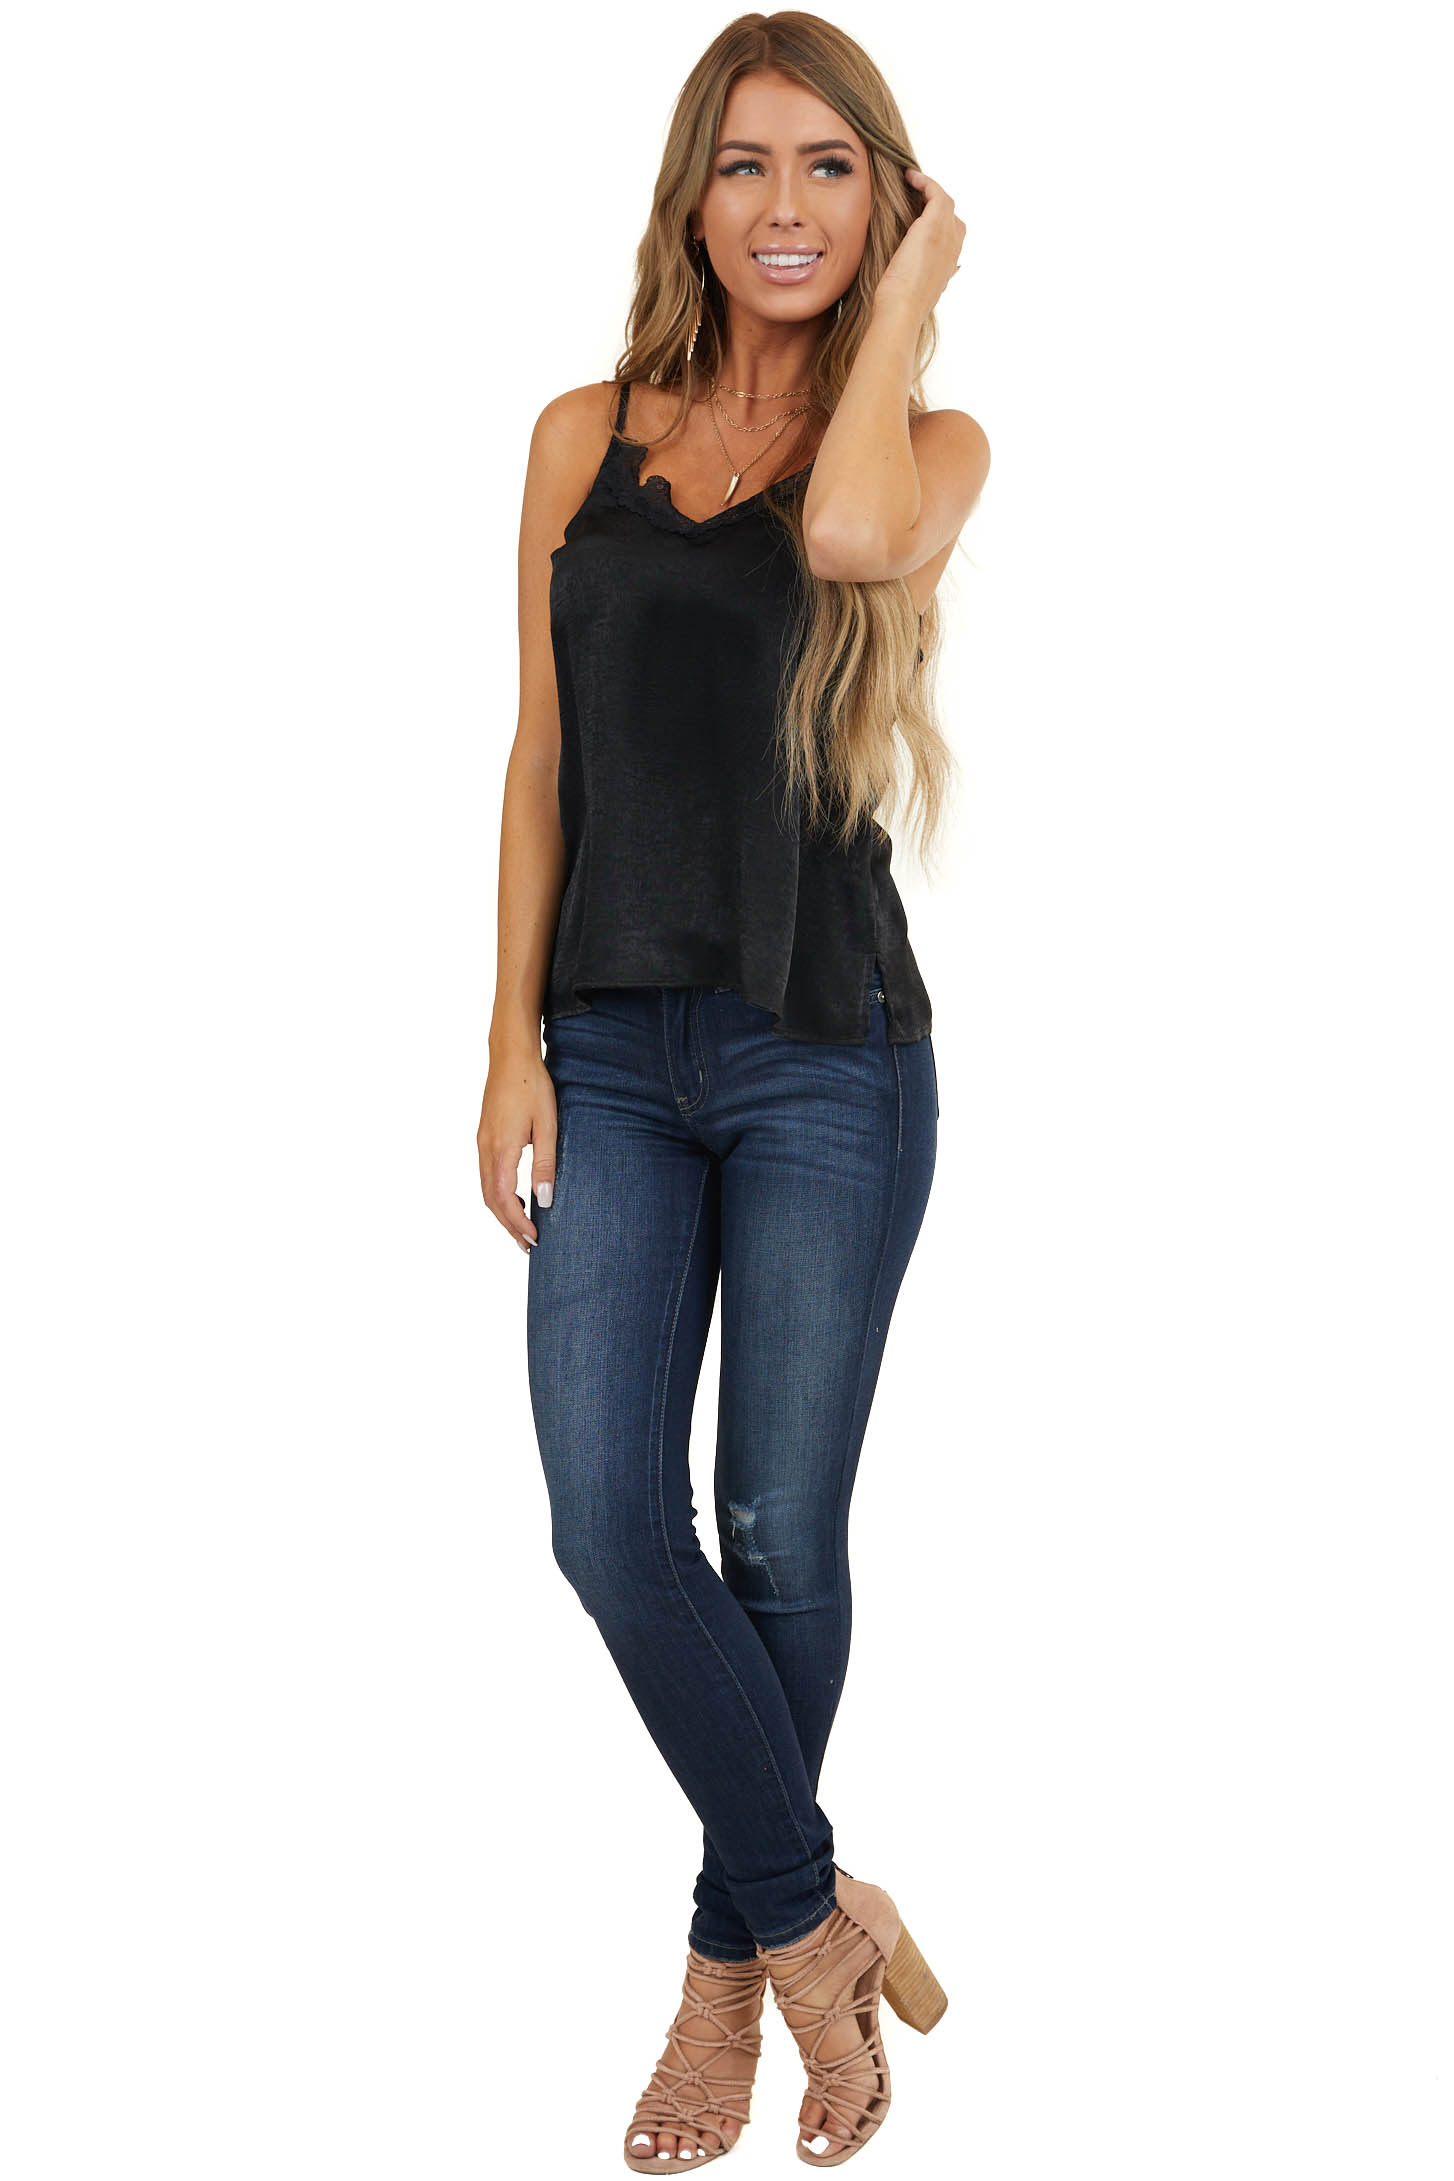 Black Satin V Neck Camisole Top with Lace Details